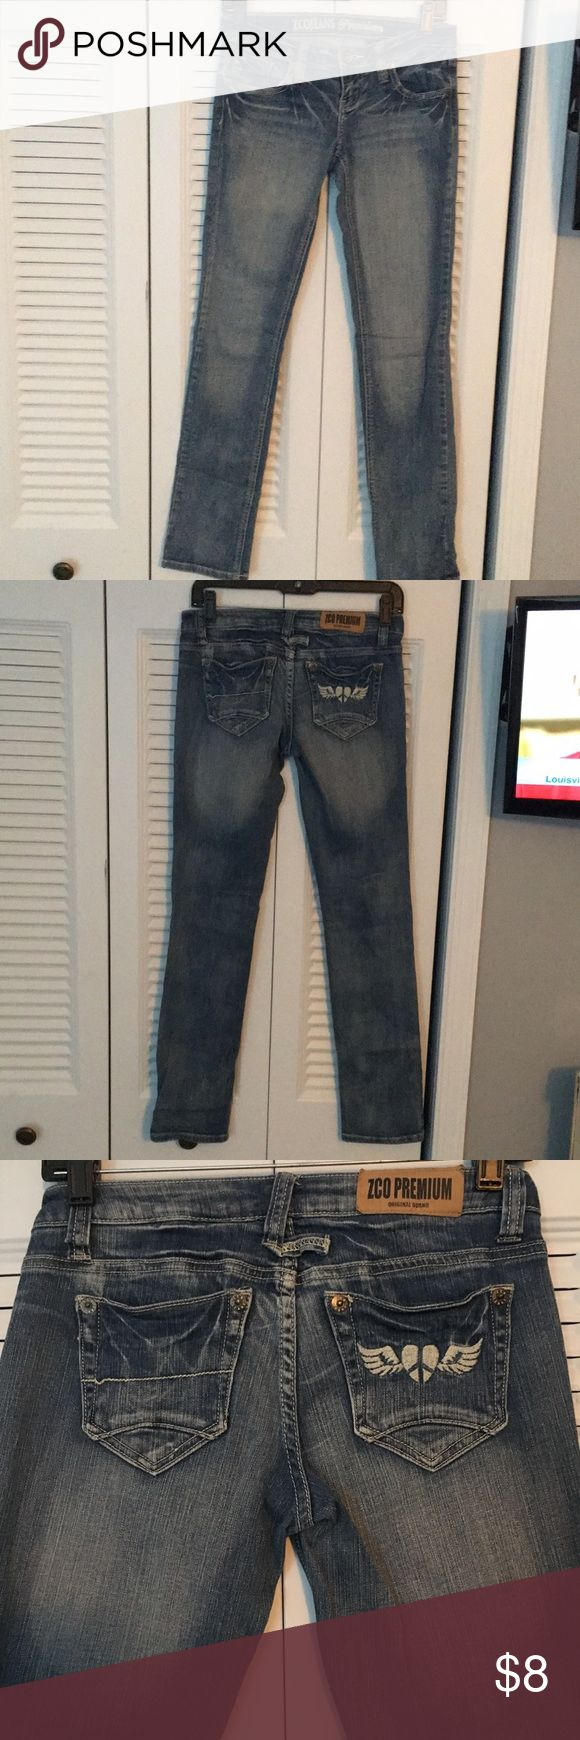 Perfect fit straight leg fit jeans! Size 5/6 Worn few times. Great used conditions. Comfortable and beautiful medium-wash denim. Mid rise fit. Great for casual or dressed up looks. It's your pick! ZCO Jeans Straight Leg